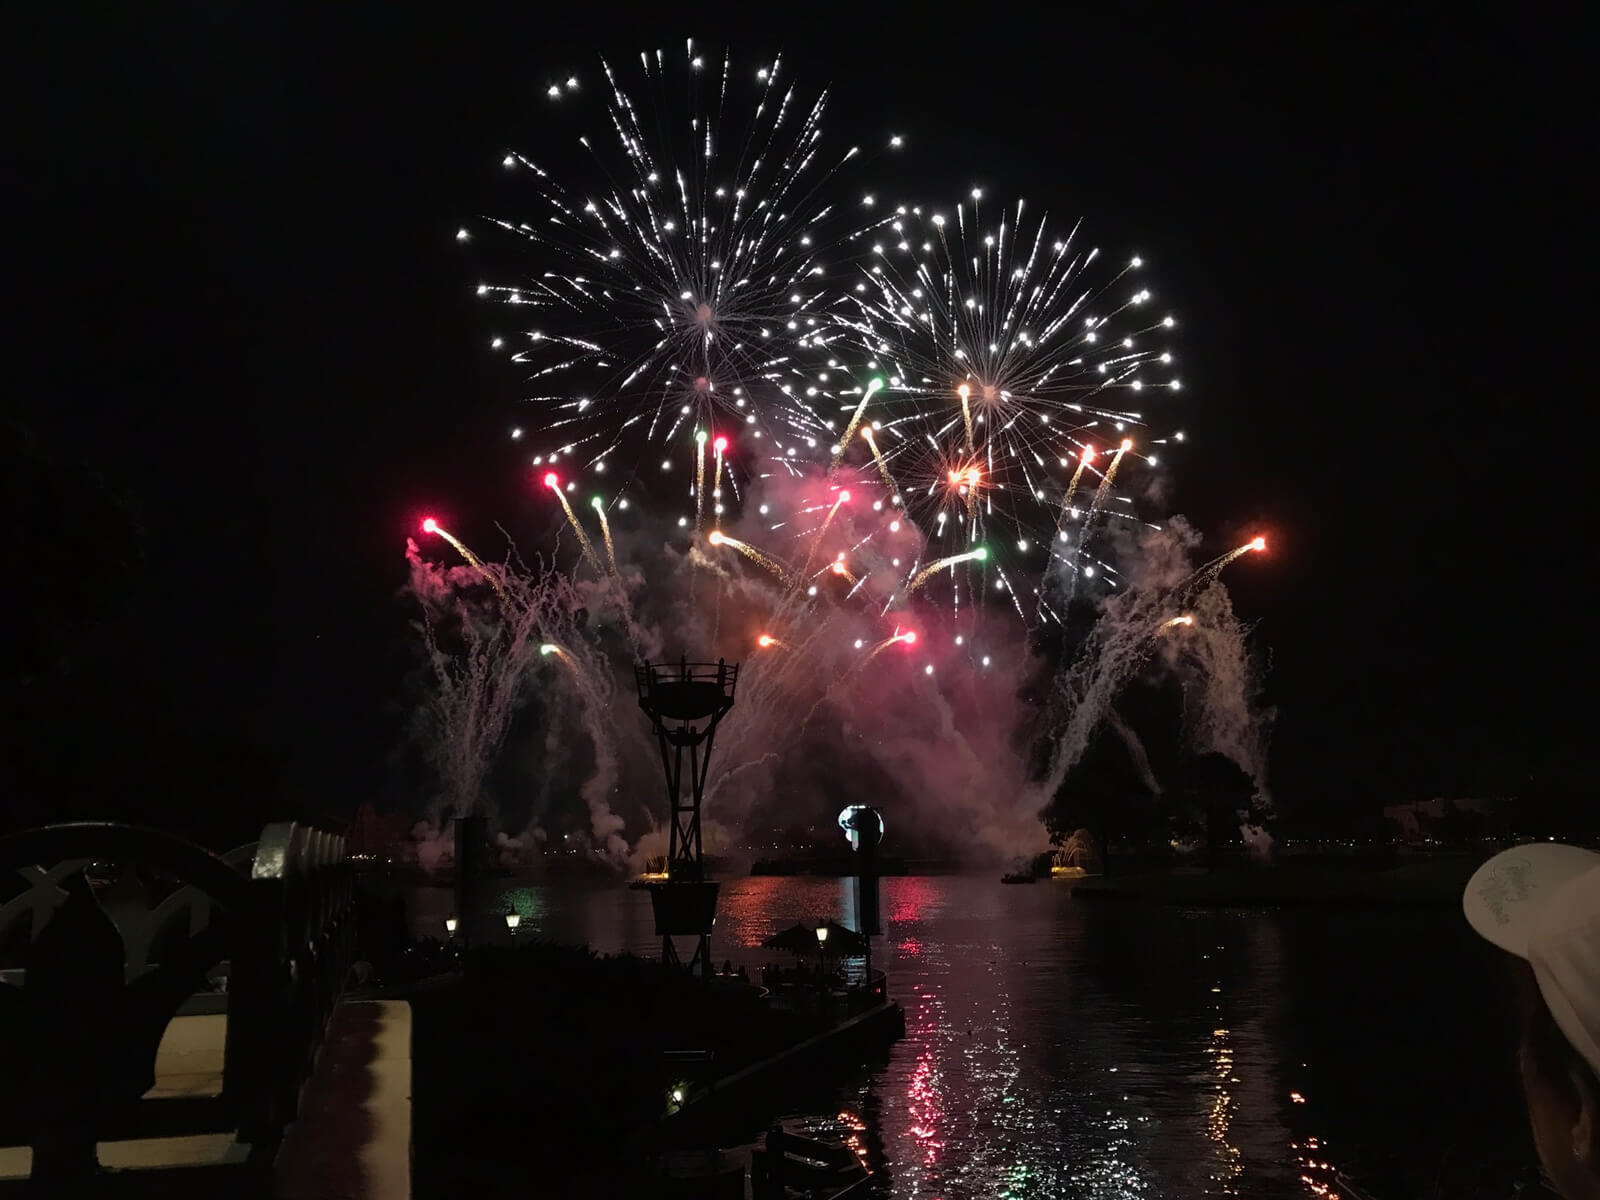 A large display of fireworks and smoke on water on a dark night